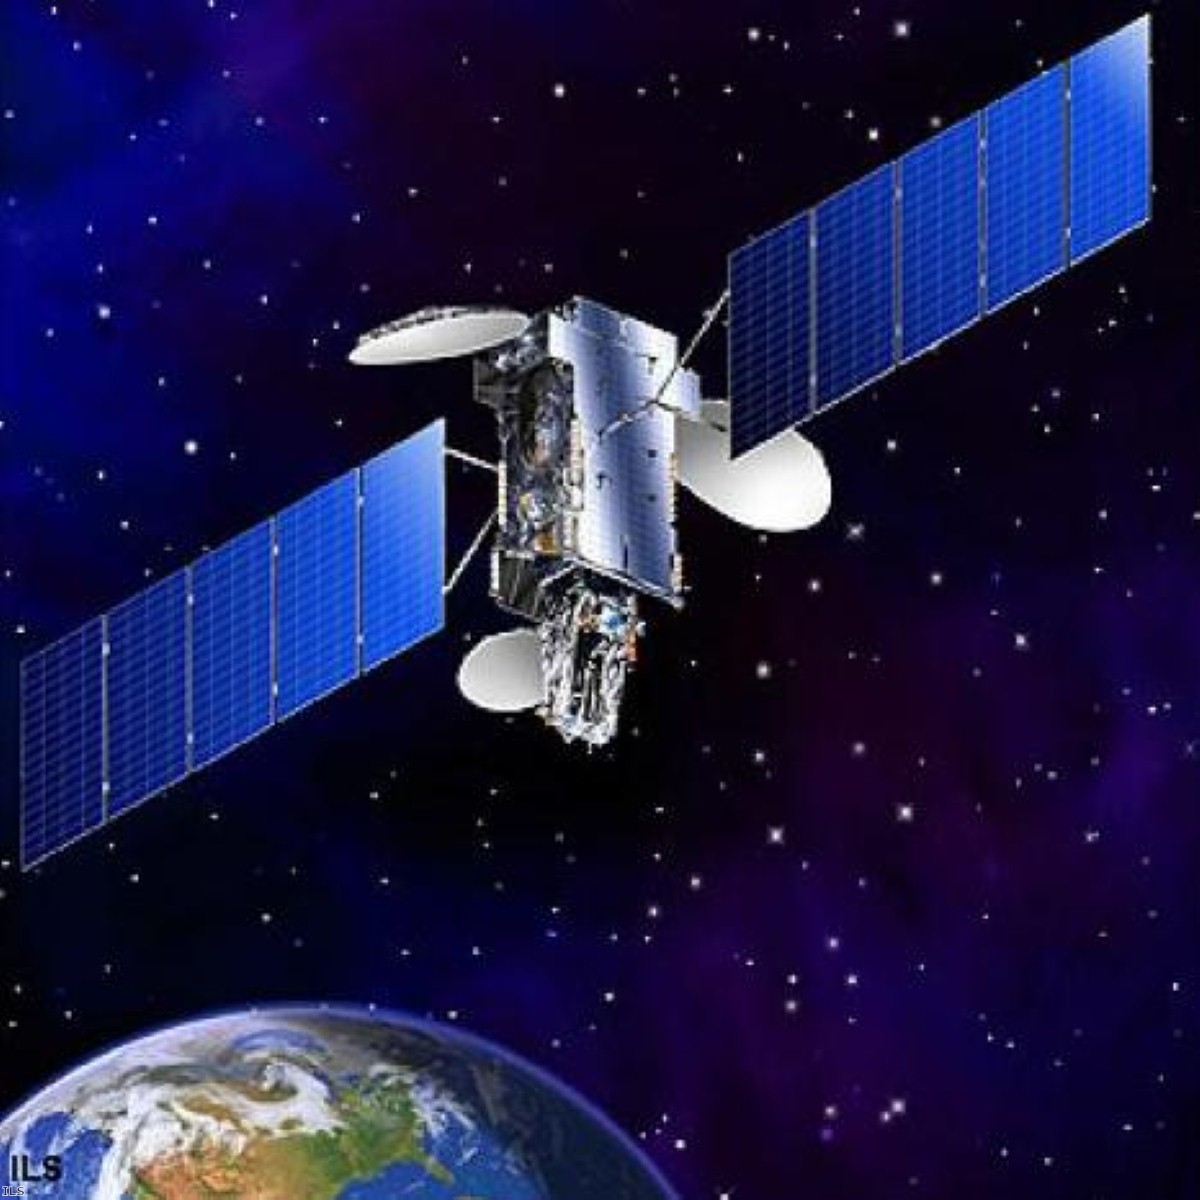 Satellite technology is viewed as a big growth area in the UK's space sector